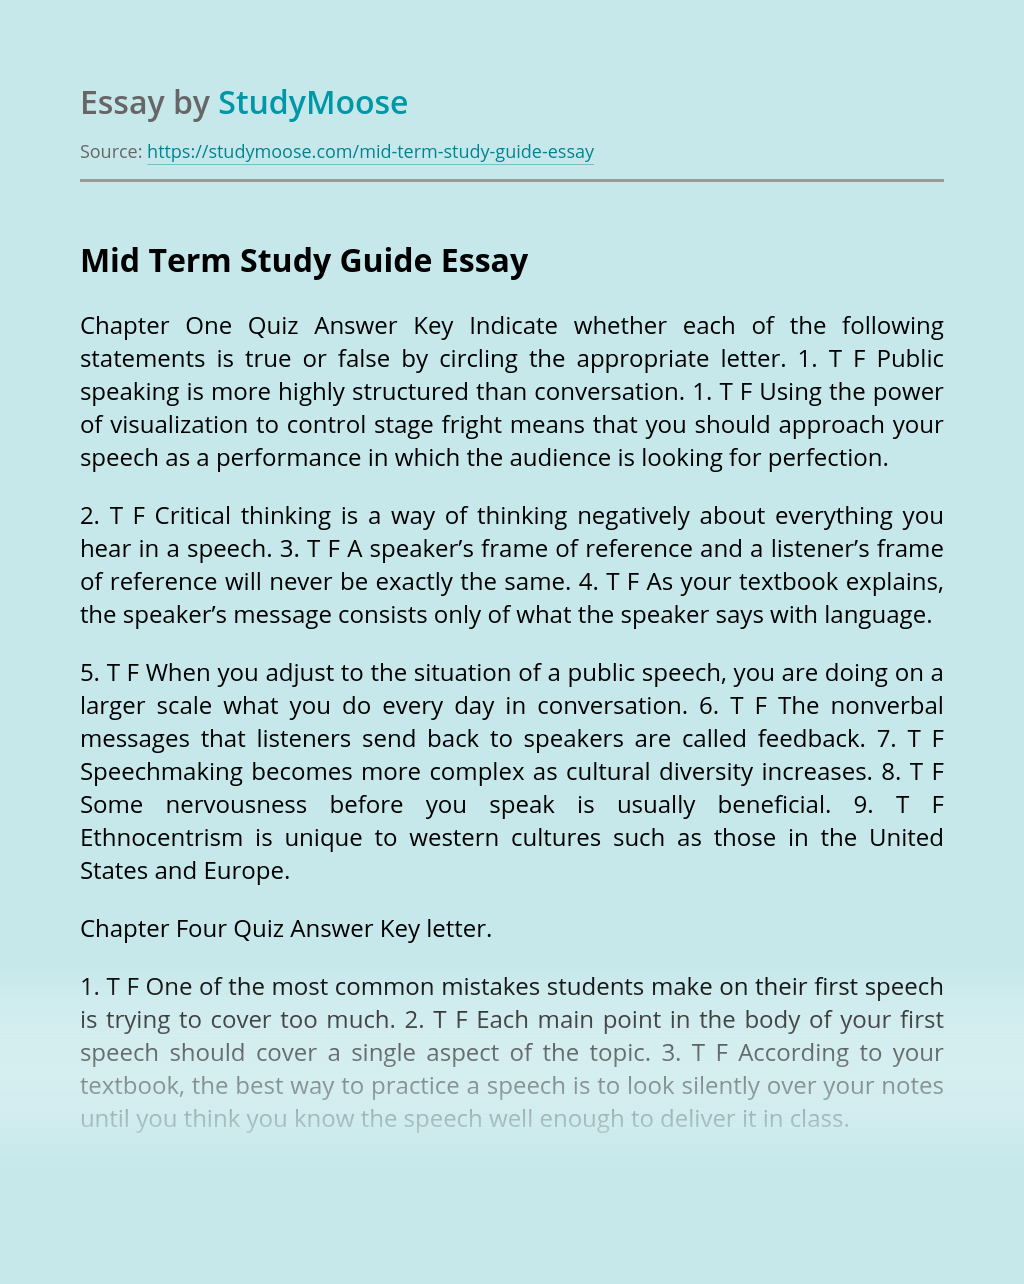 Mid Term Study Guide